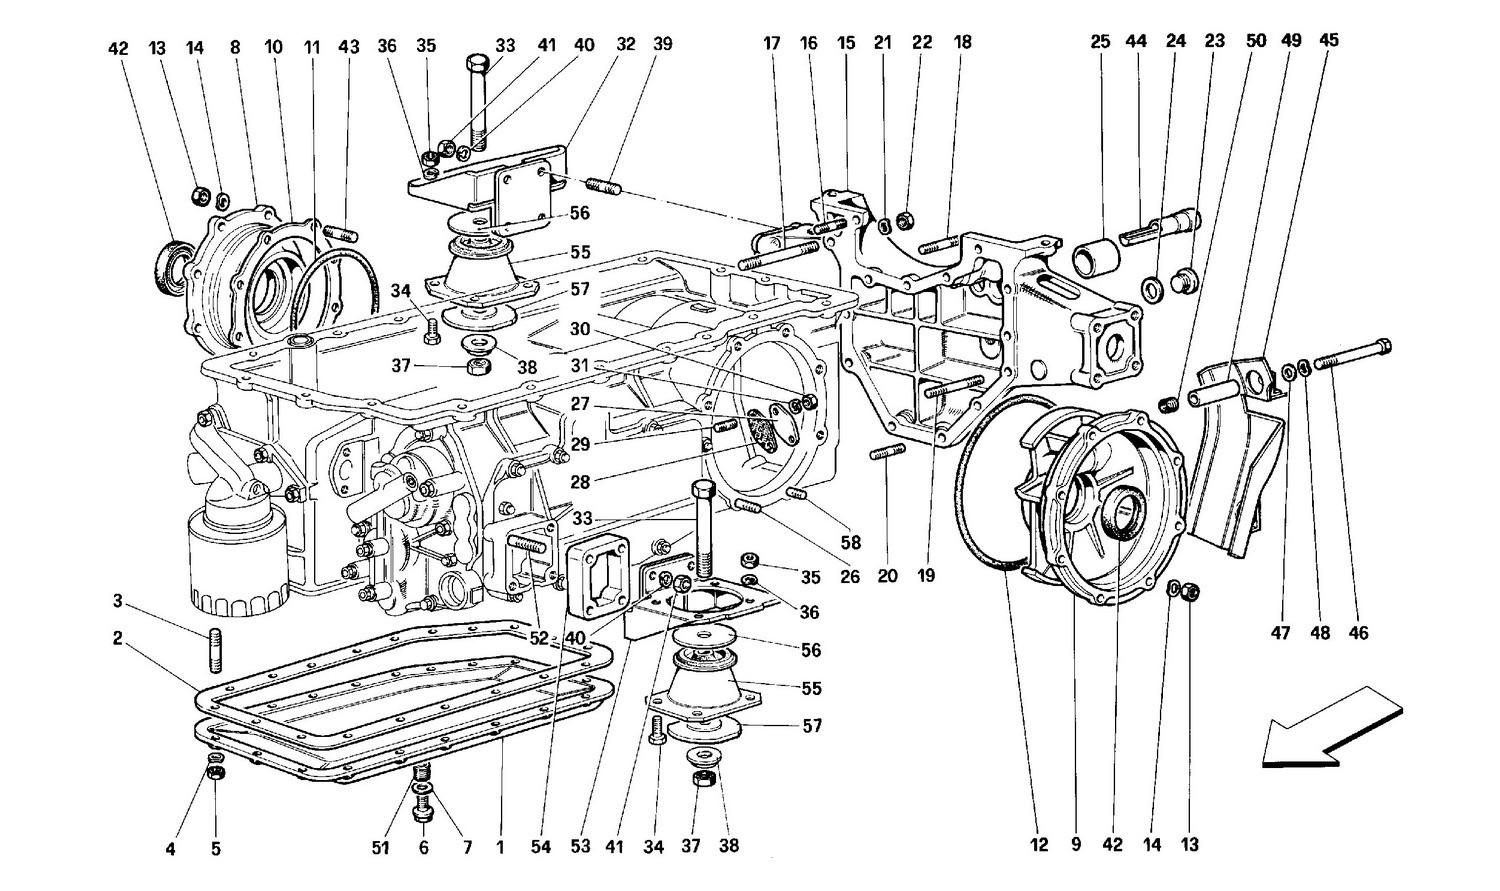 Gearbox - Mounting and covers